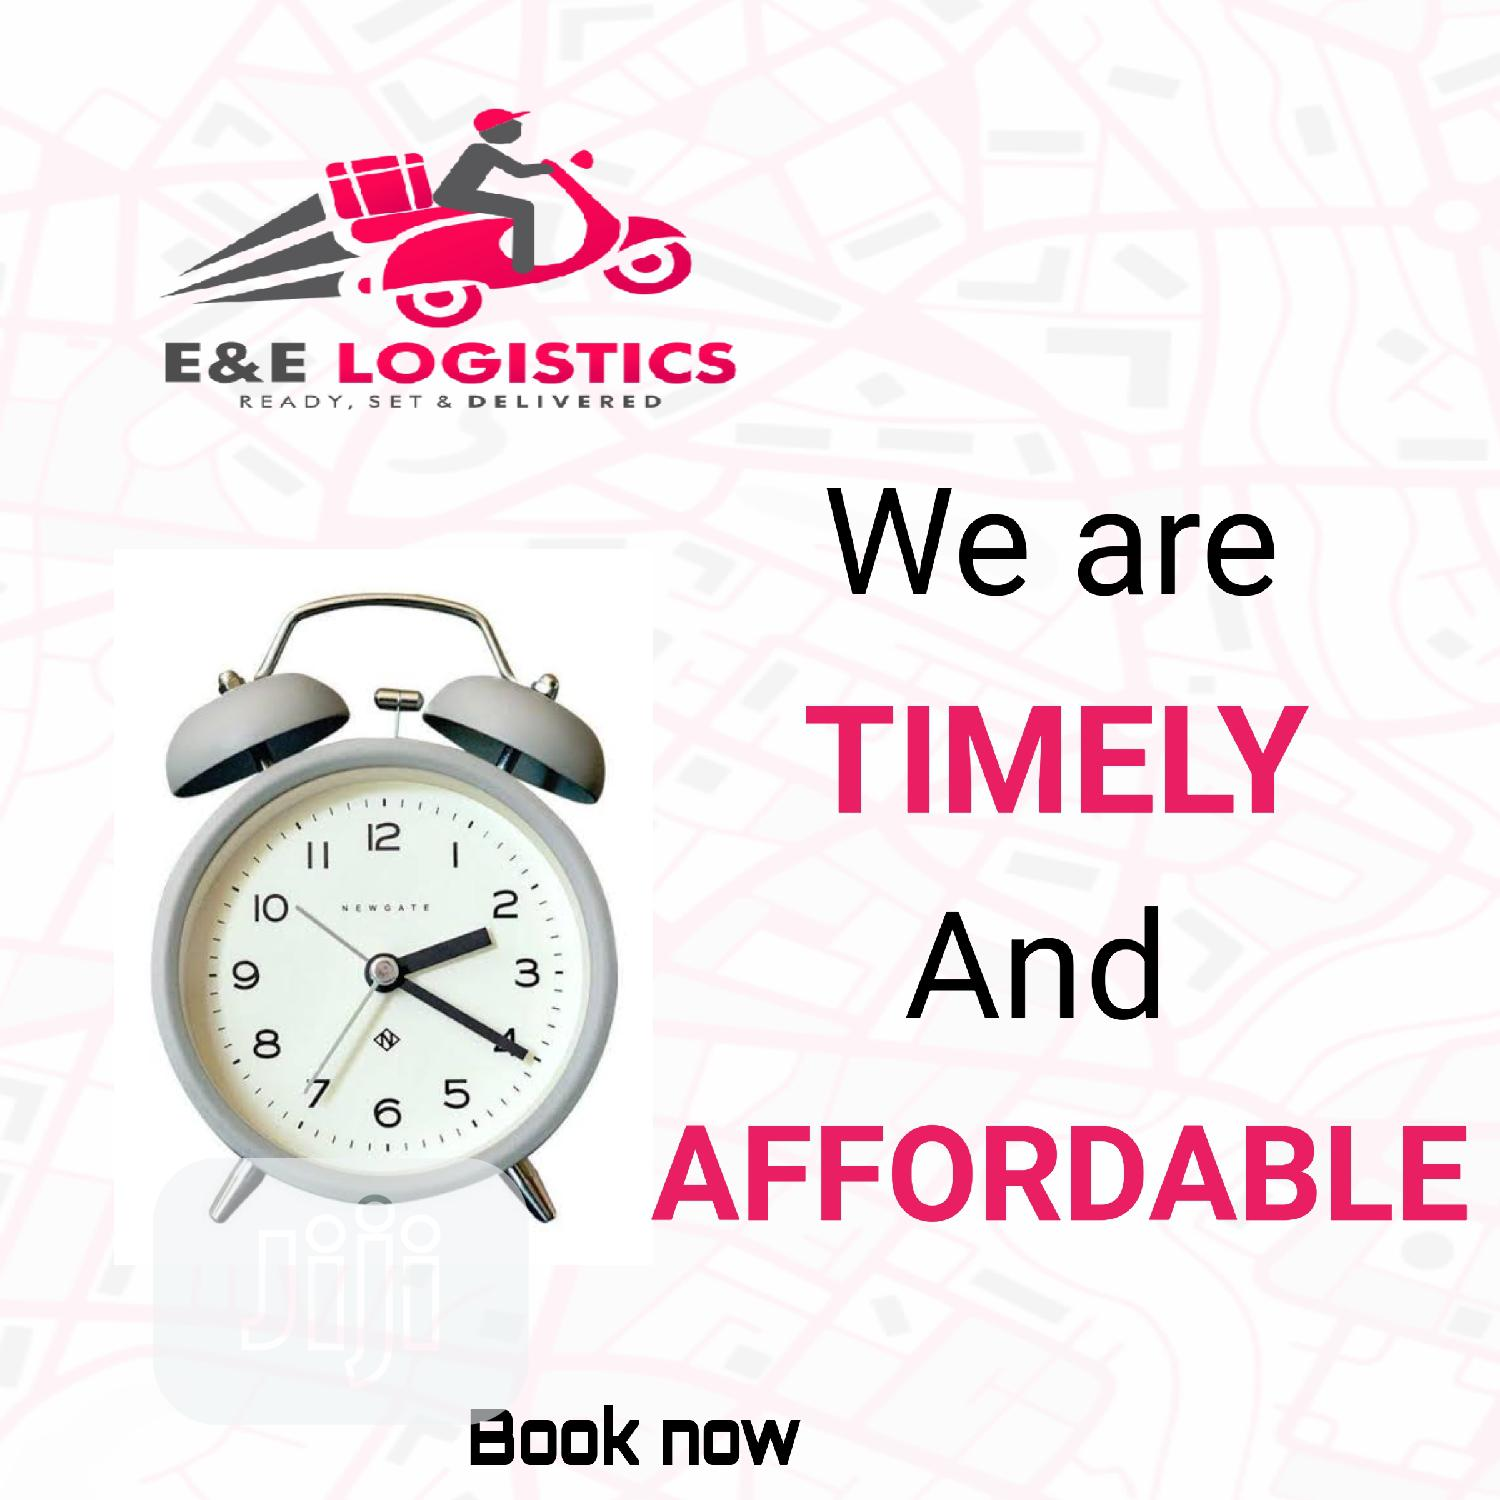 Delivery Services | Logistics Services for sale in Lekki Phase 2, Lagos State, Nigeria